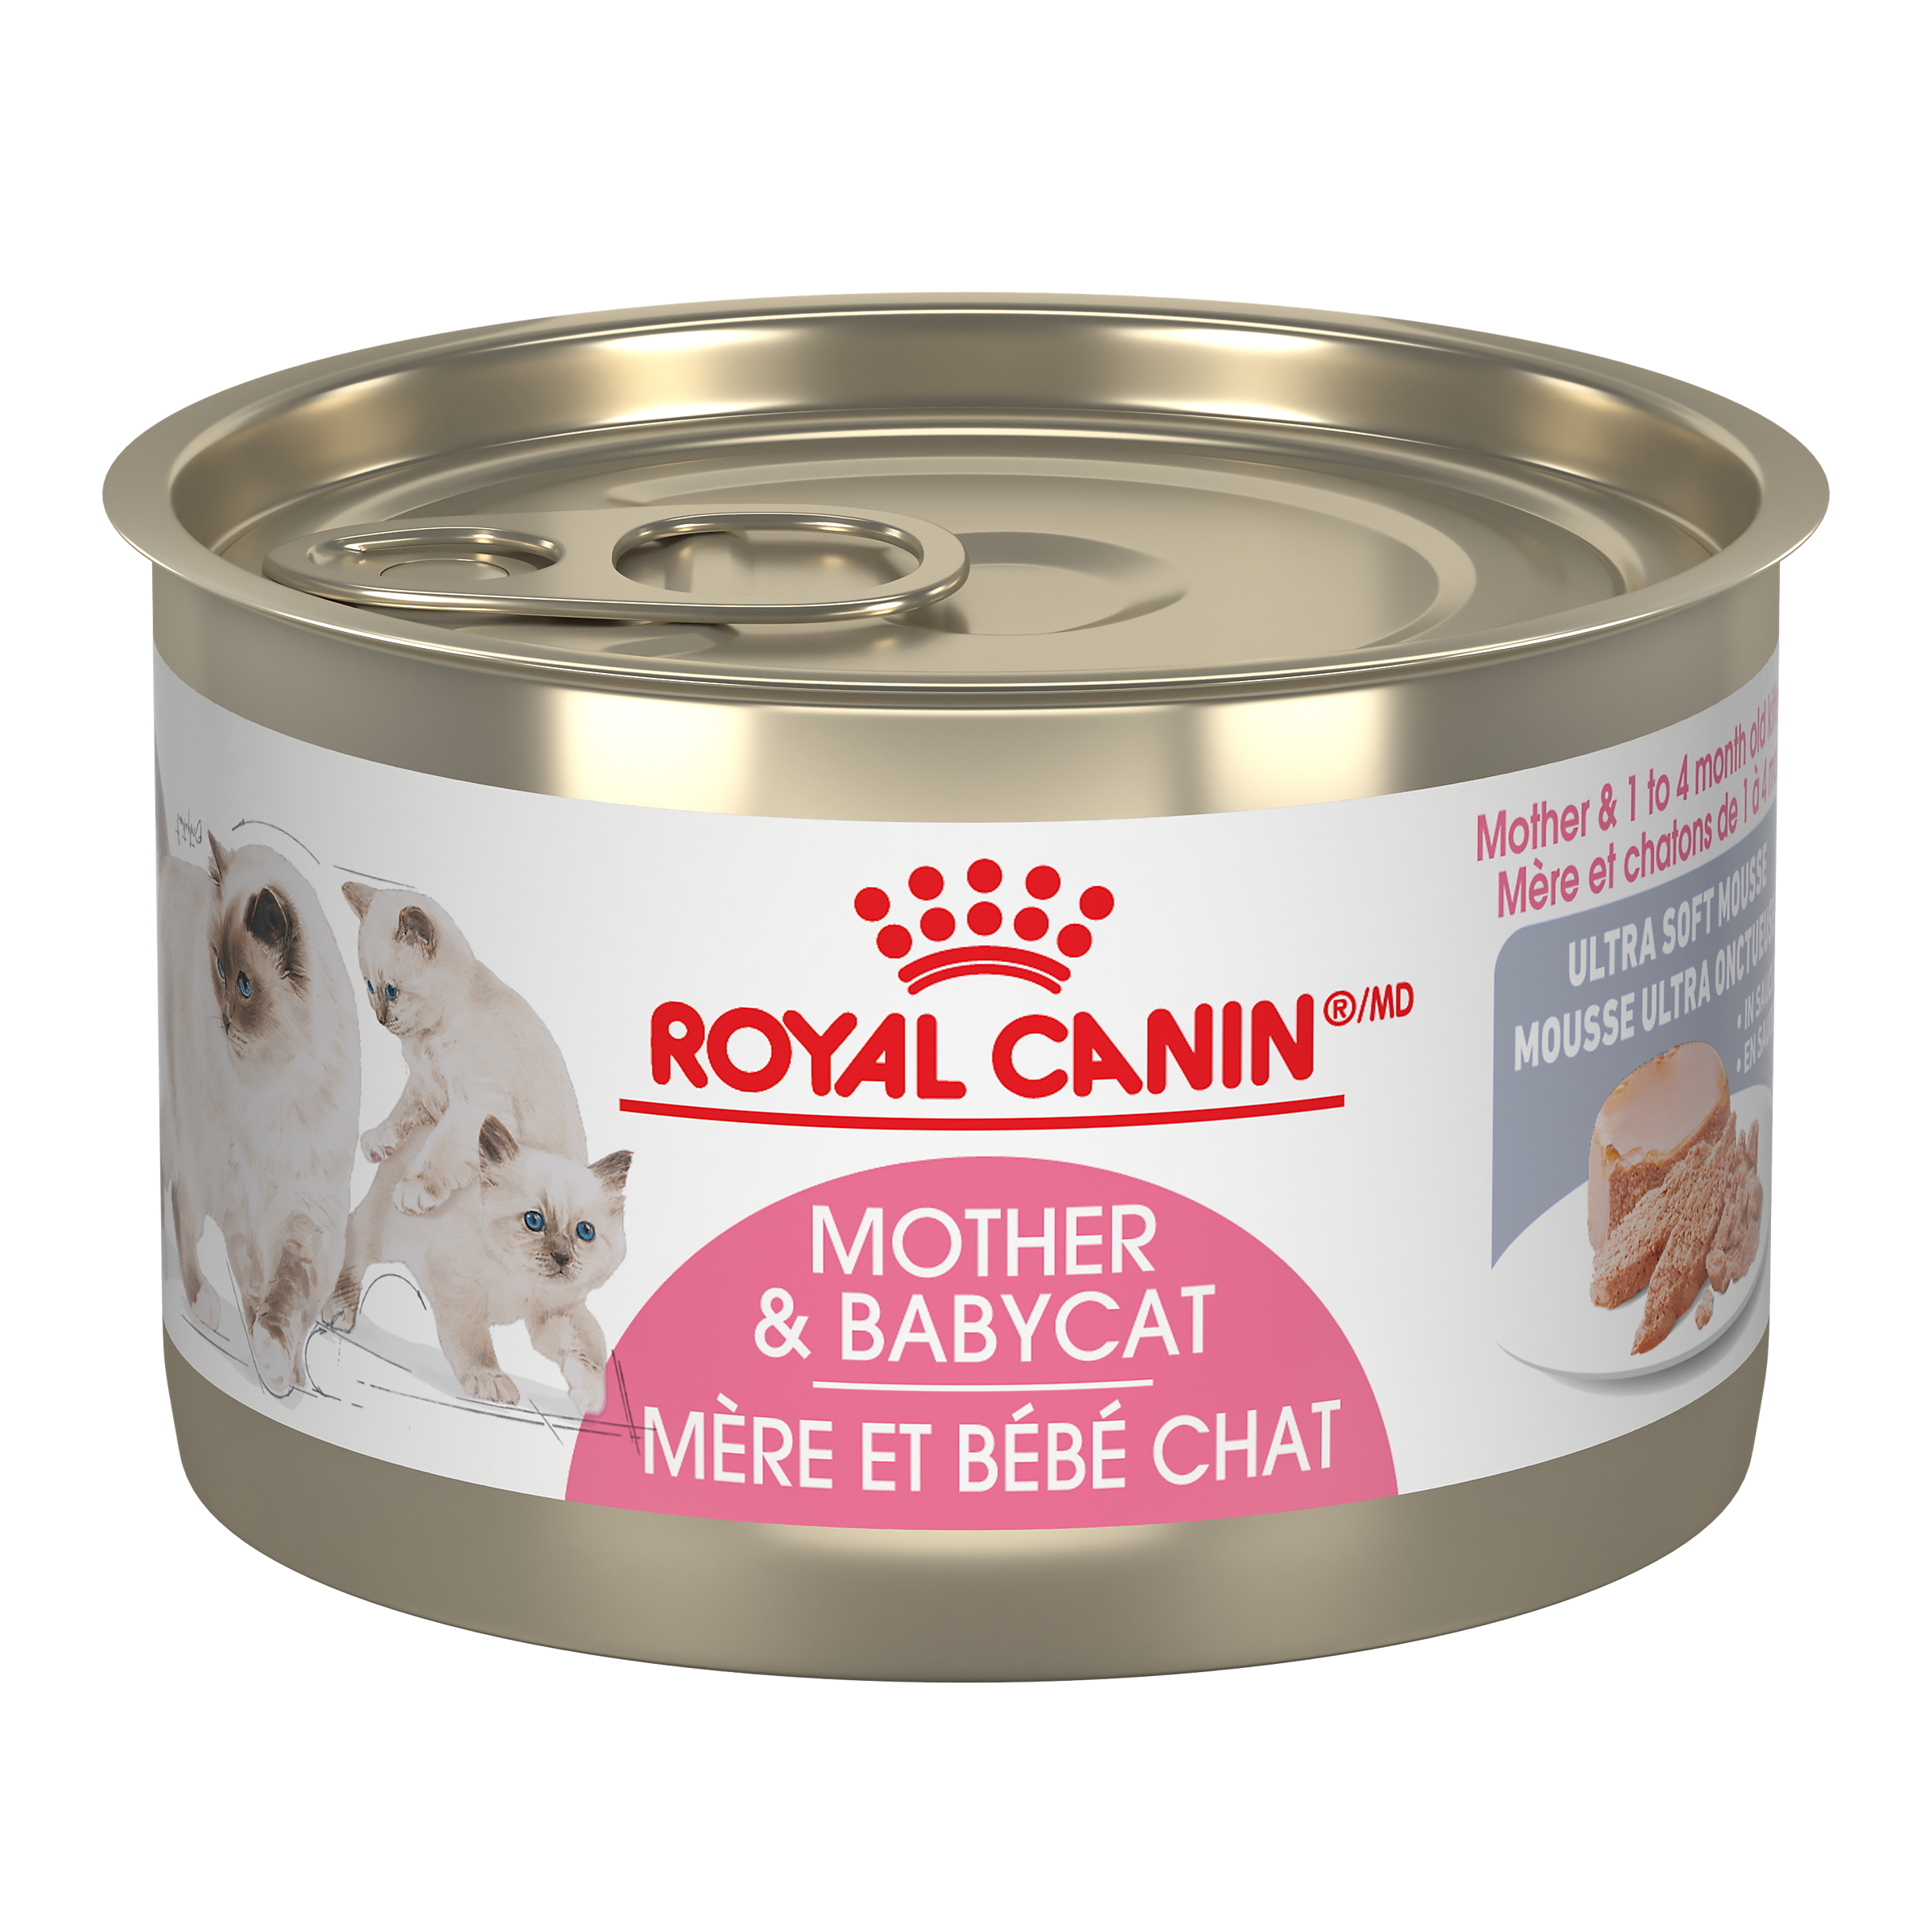 Royal Canin FHN Mother & Baby Ultra Soft Mousse Canned Wet Cat Food Image